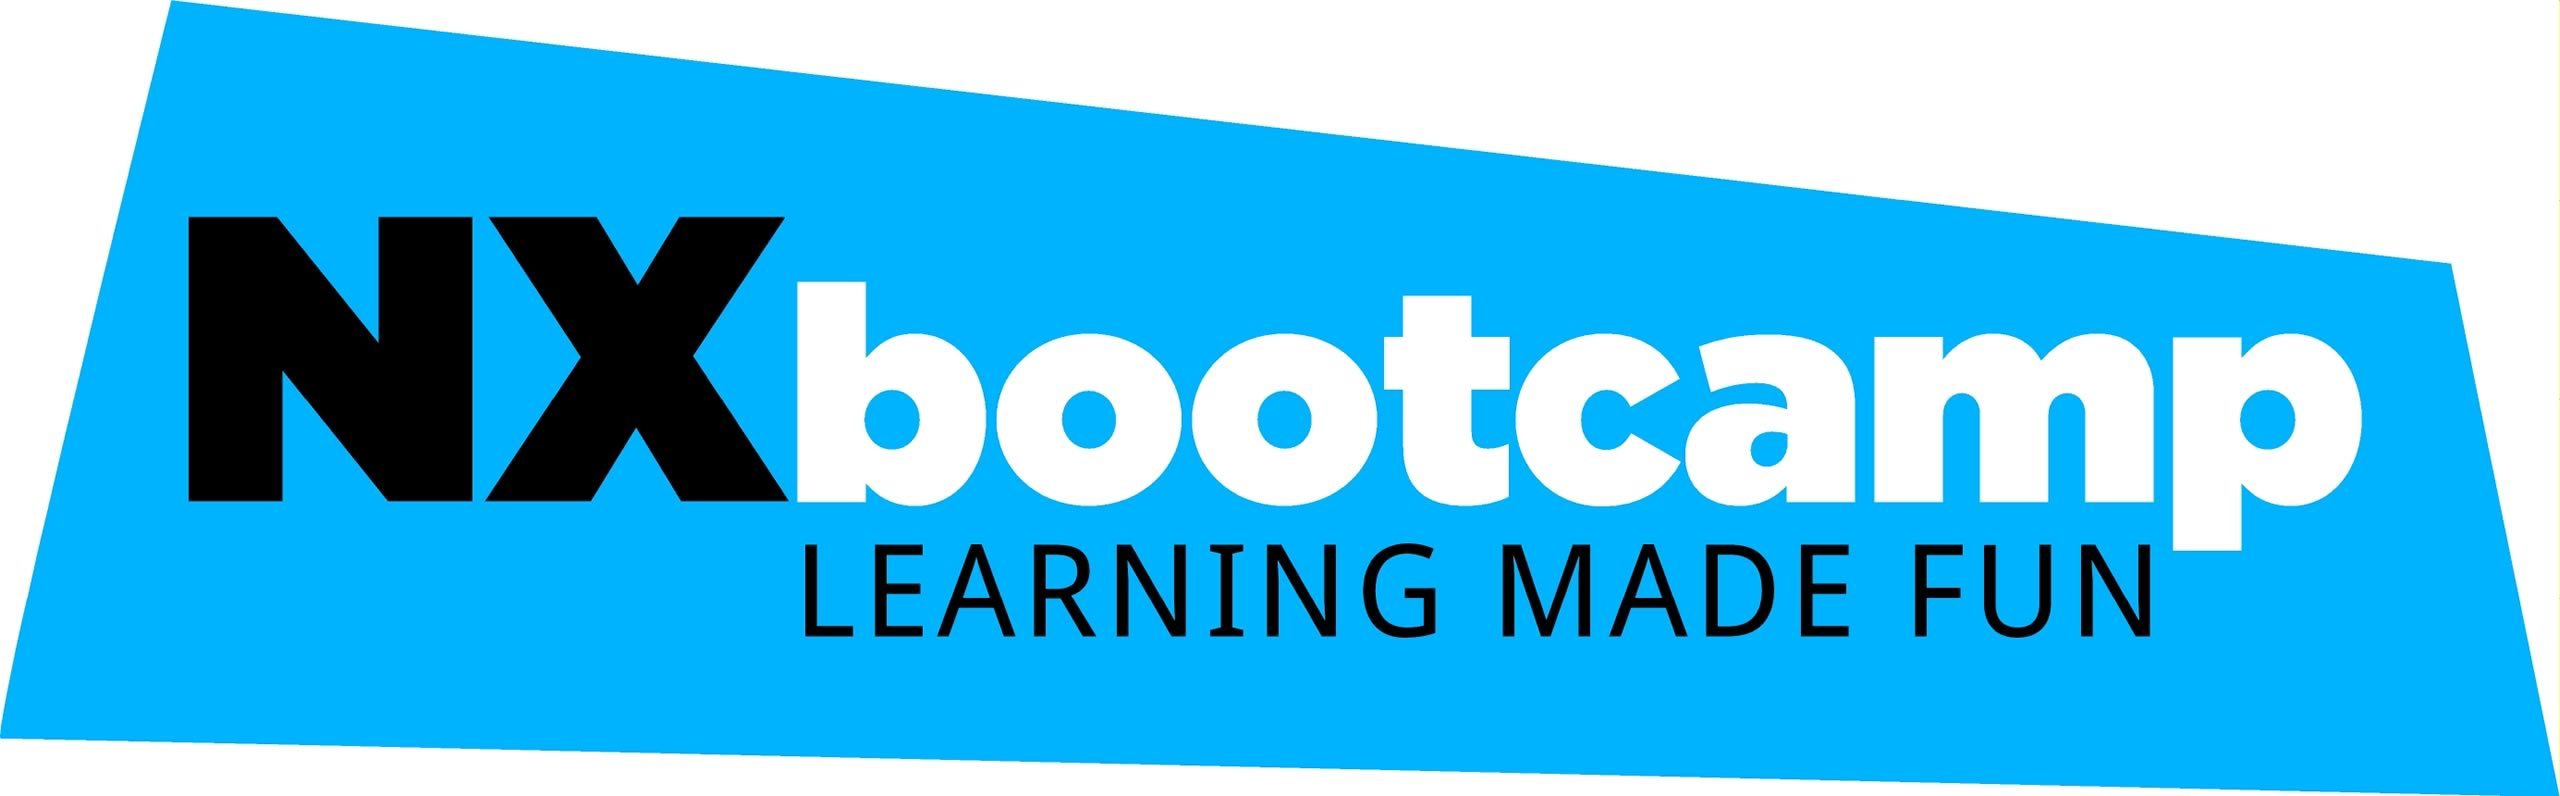 NXbootcamp Elearning